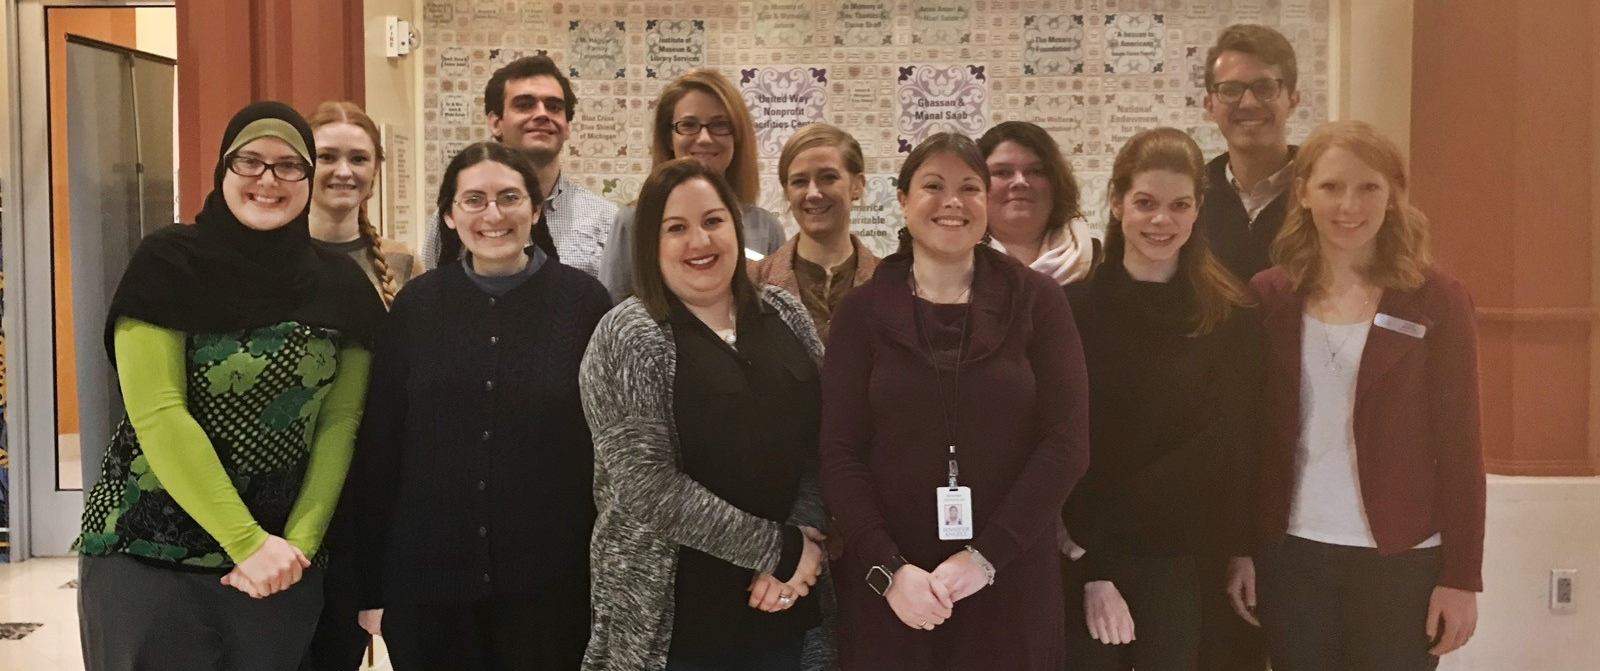 Twelve MACA members stand for a picture during a meeting in November 2017.